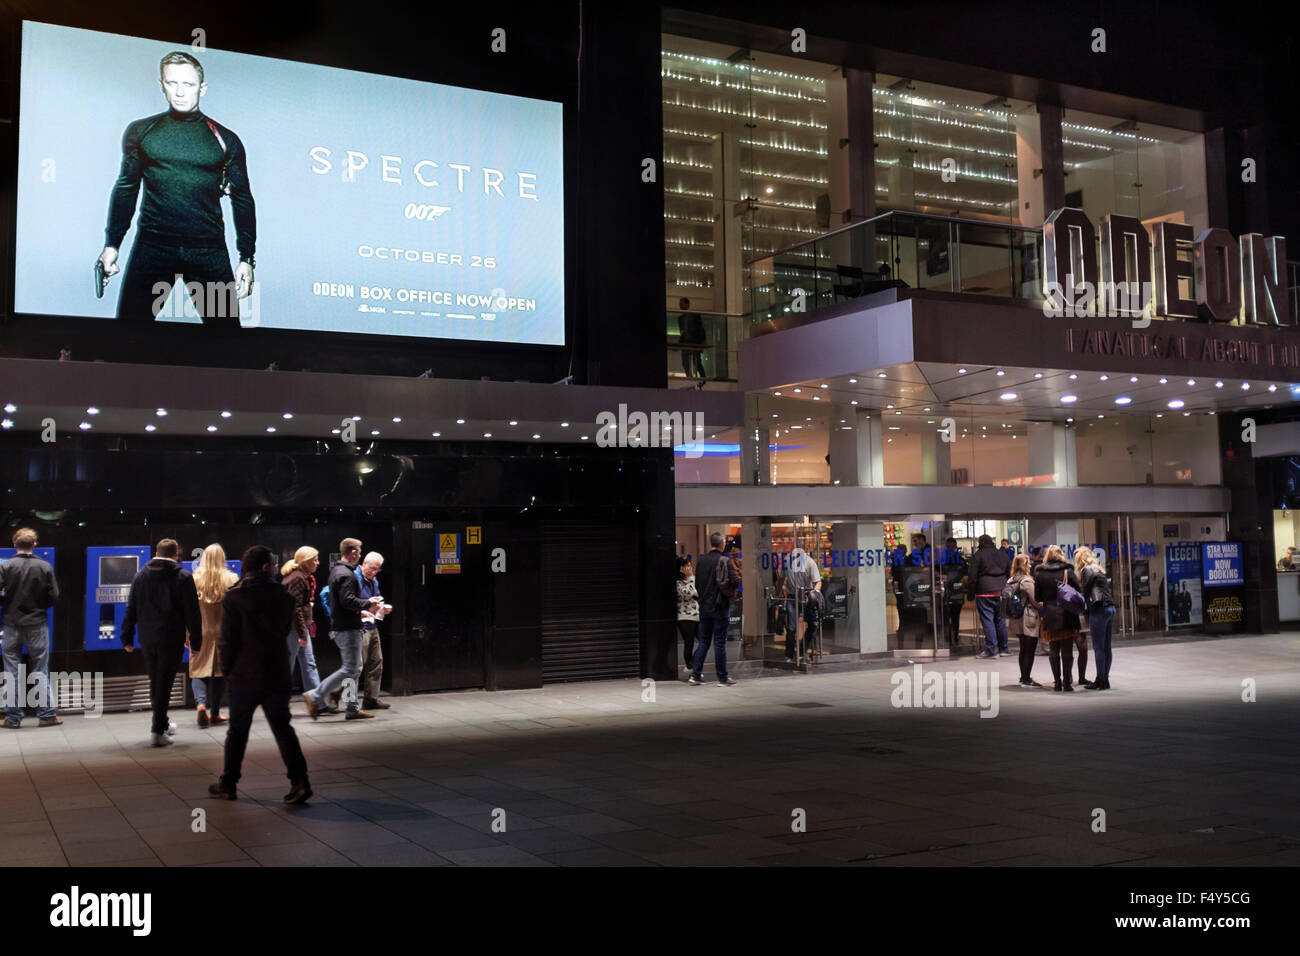 Odeon cinema , Leicester Square, London advertising the release of  James Bond film Spectre starring Daniel Craig - Stock Image